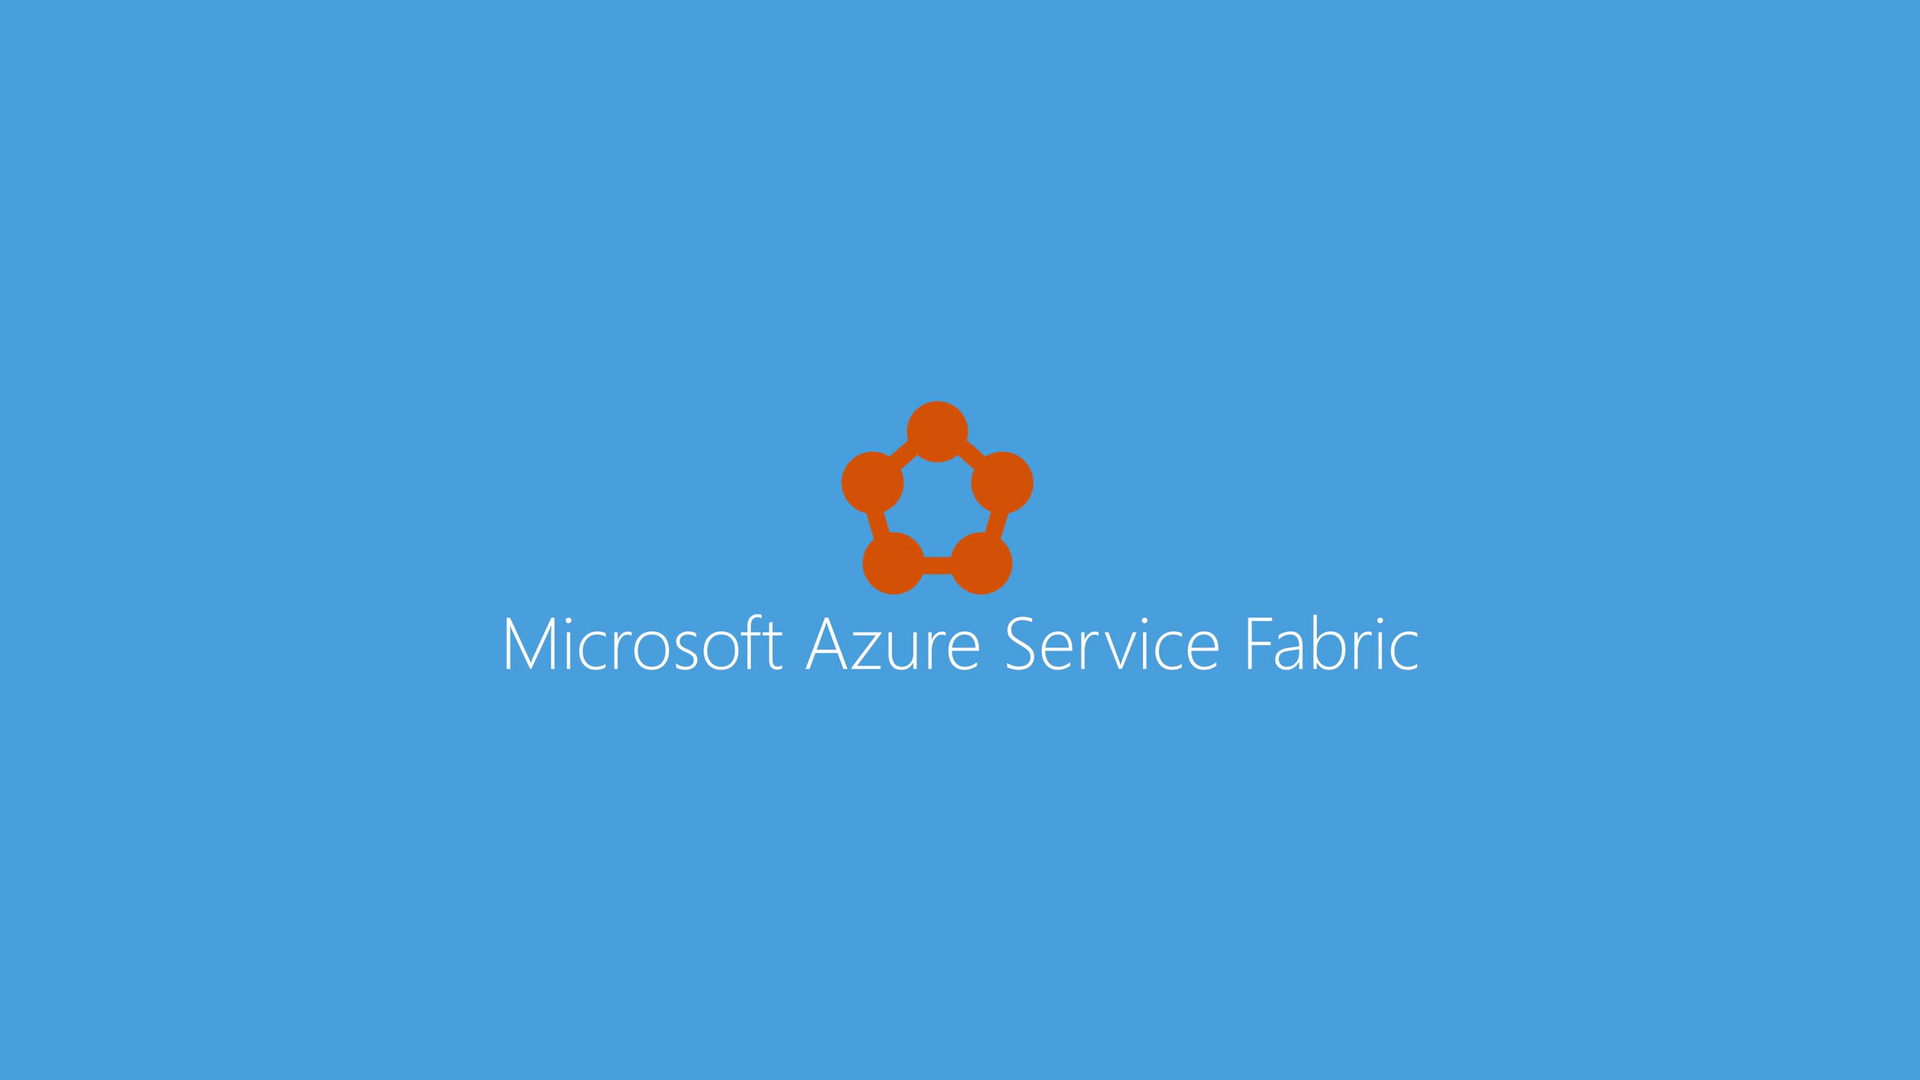 Introduction to Microservices with Azure Service Fabric